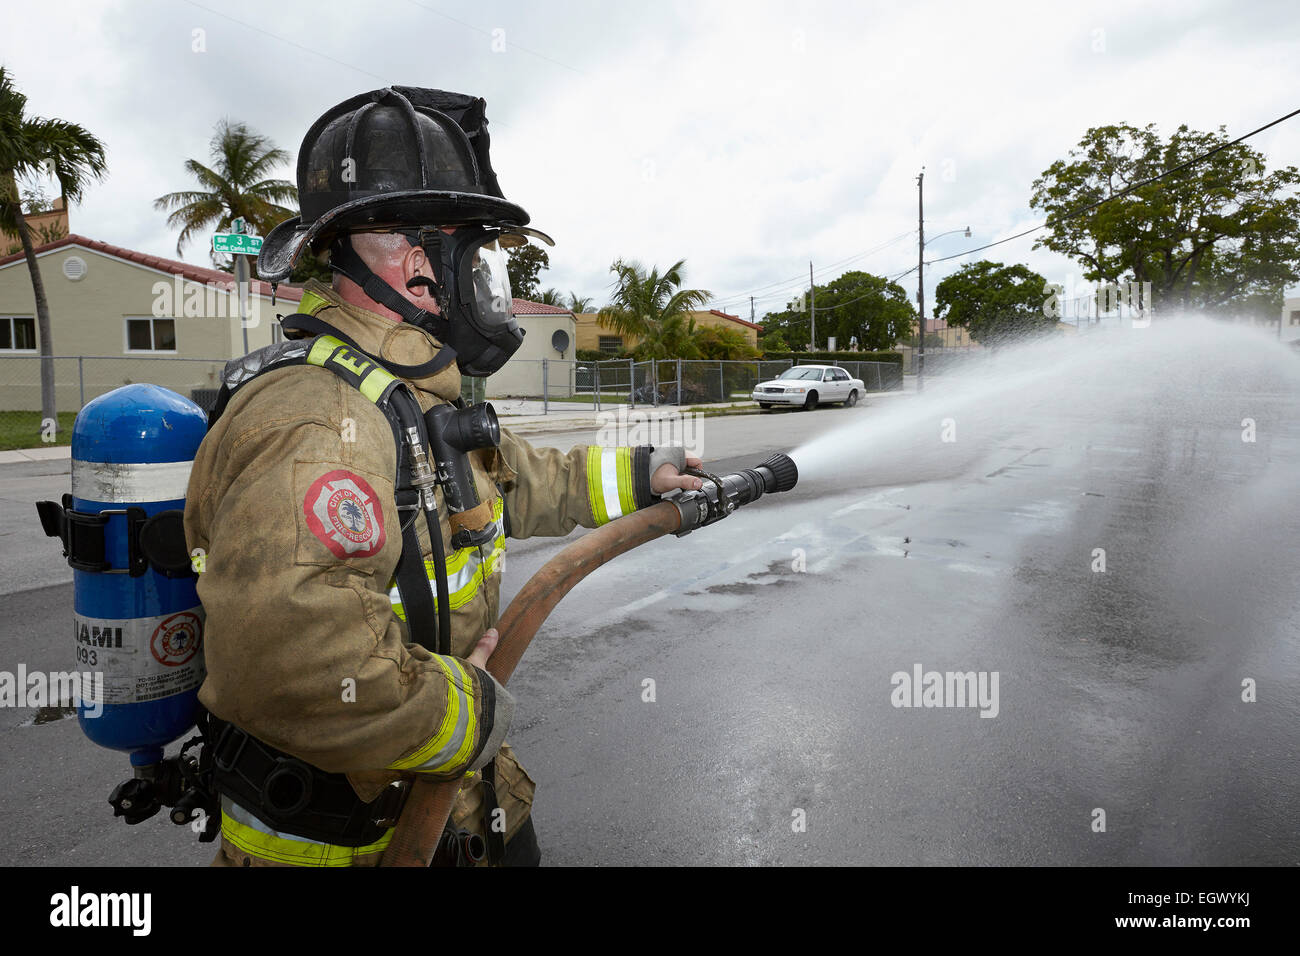 Firefighter with hose - Stock Image